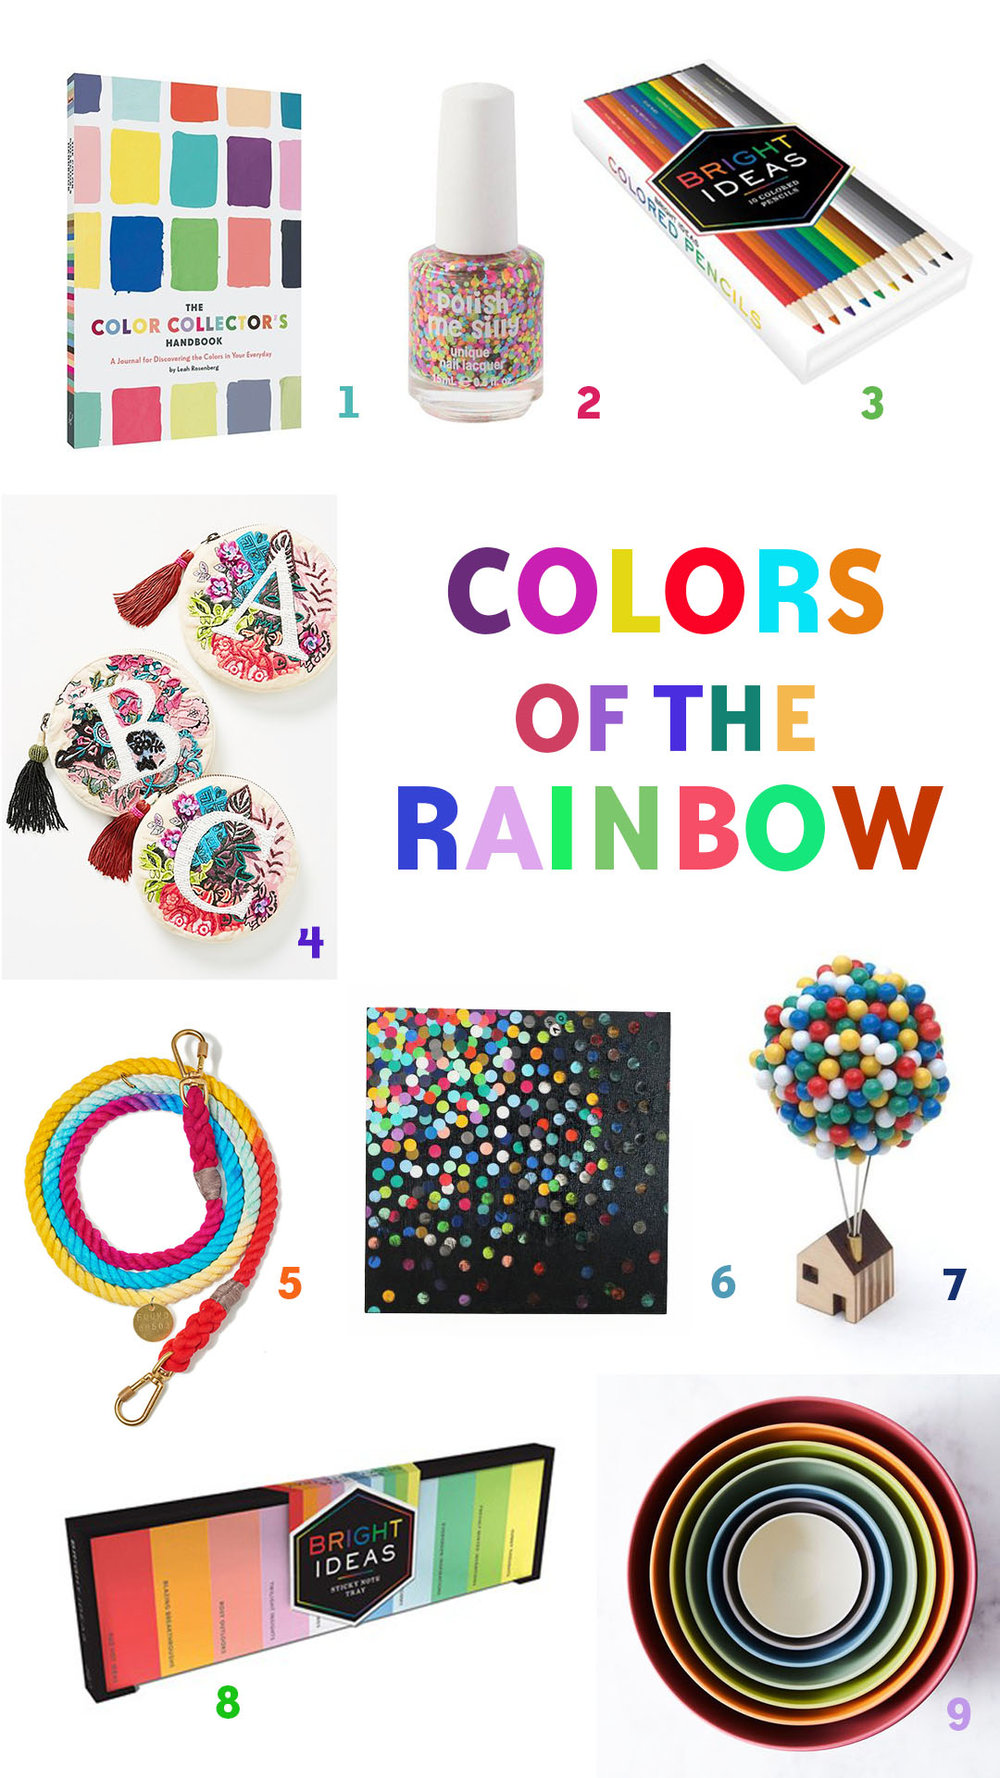 1.  Color Collector's Handbook , $16.95. 2.  Nail Polish , $9.95. 3.  Pencils , $14.95. 4.  Pouch , $38. 5.  Dog Leash , $64. 6.  Dot Artwork , $450. 7.  Balloon Pin House , $24. 8.  Sticky Notes , $16. 9.  Nesting bowls , $70.